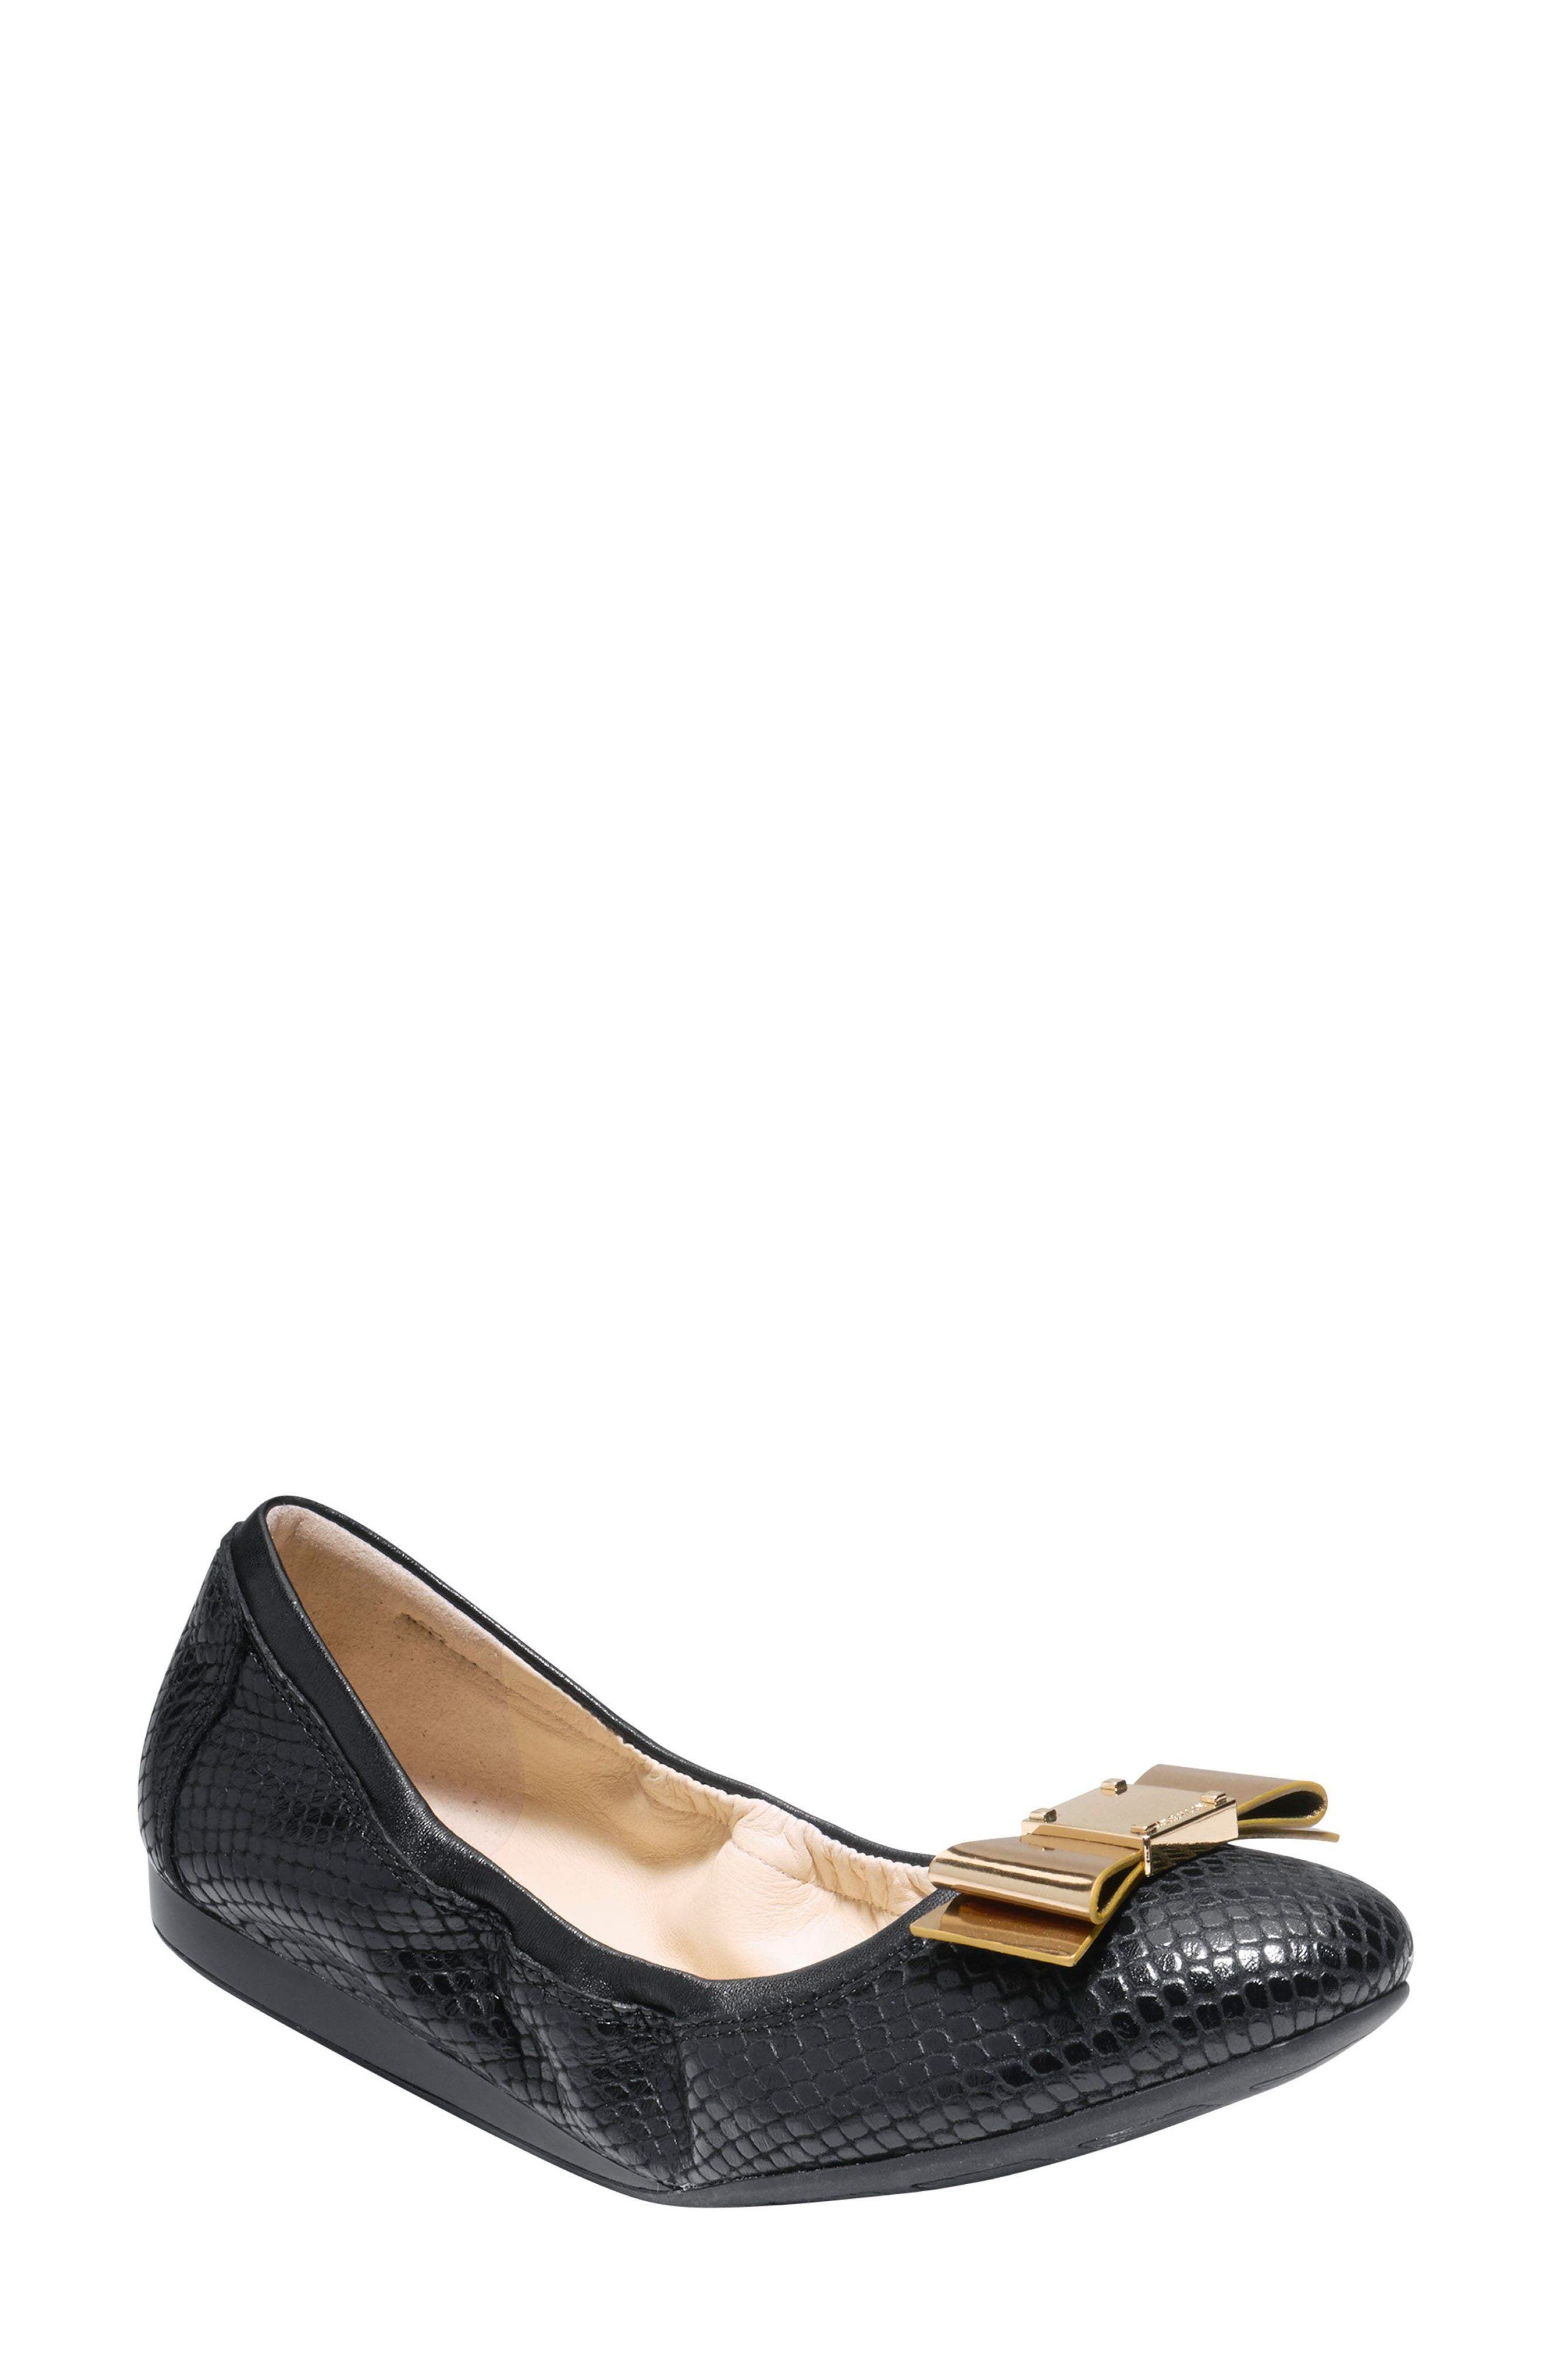 Main Image - Cole Haan 'Tali' Bow Ballet Flat (Women)